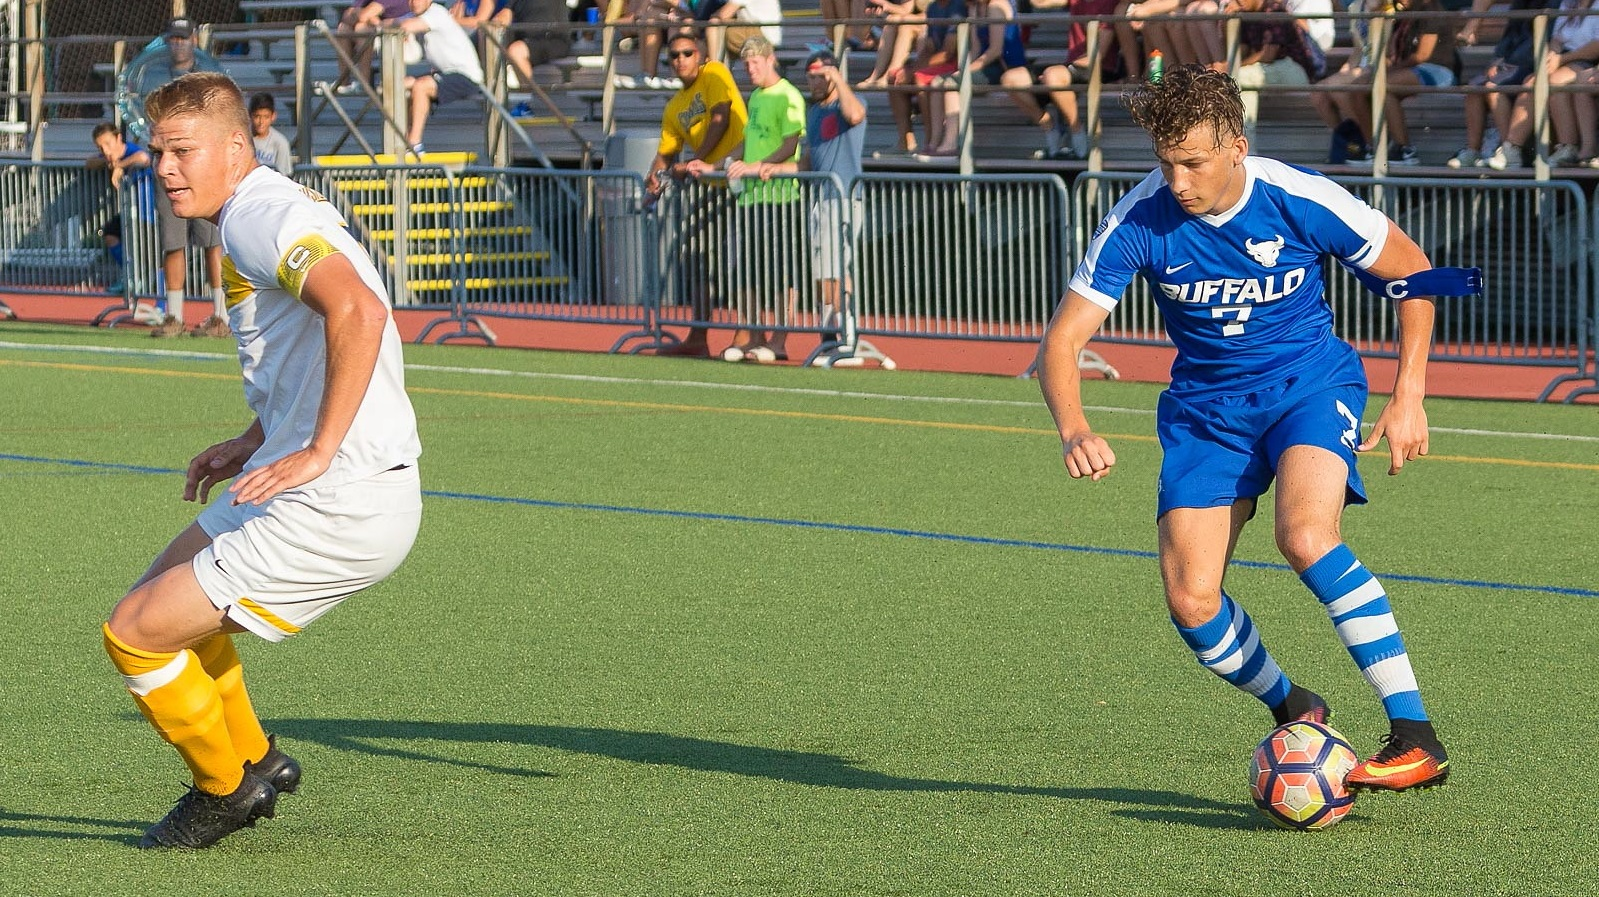 Cicerone turns around Canisius defender Thomas Teupen with a clever fake kick and cut. (Don Nieman/Special to The News)